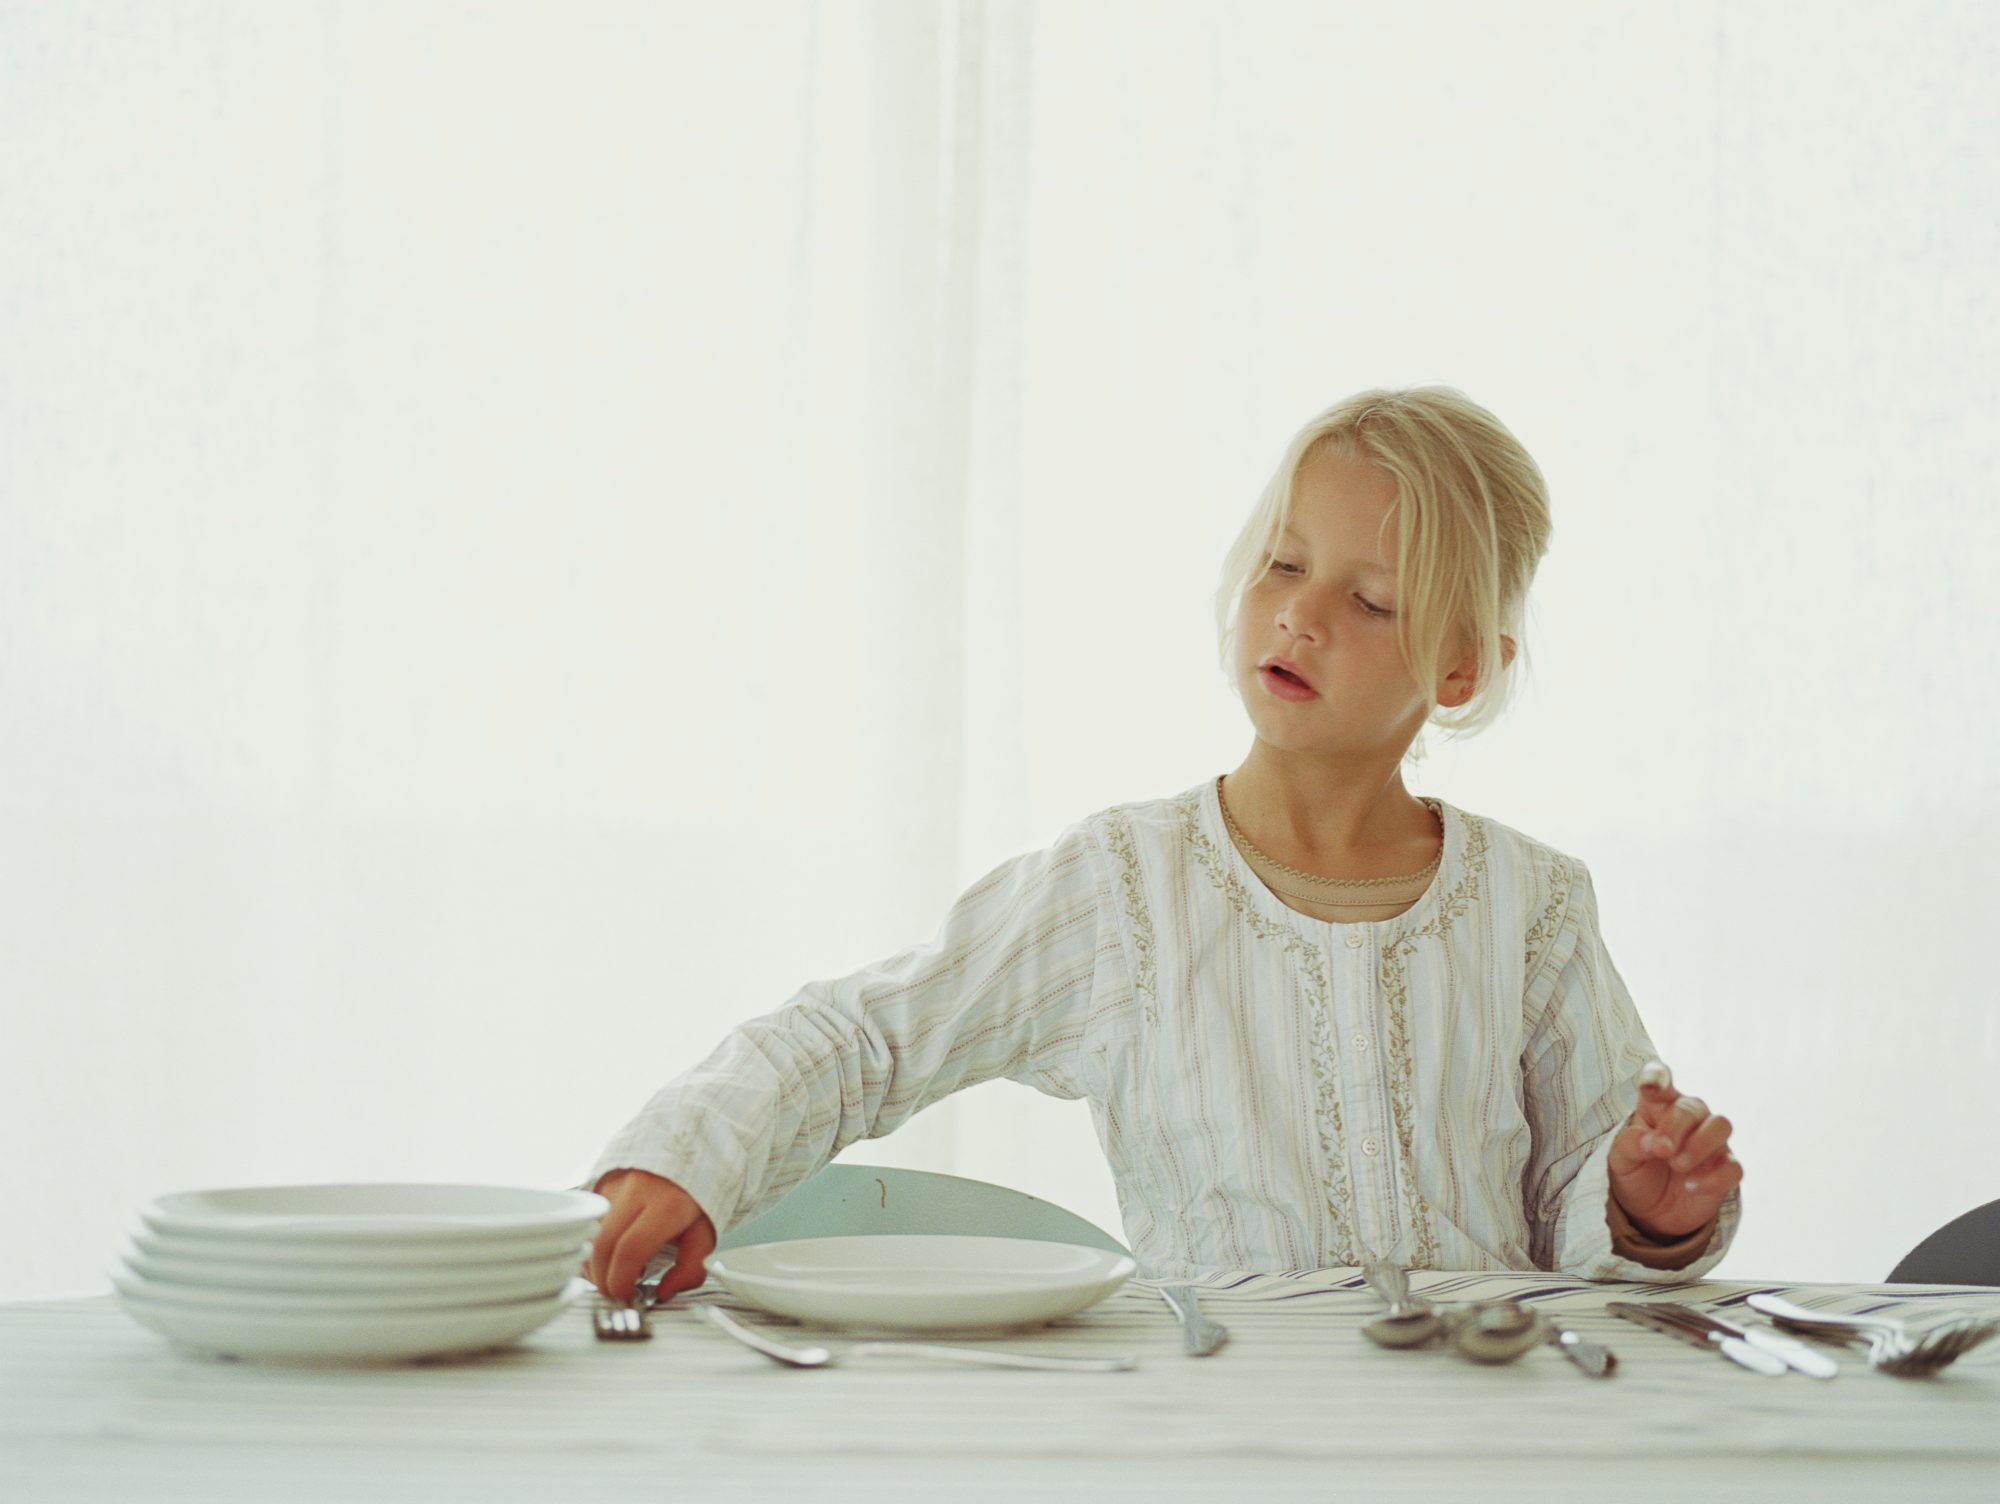 Young Girl Setting Table